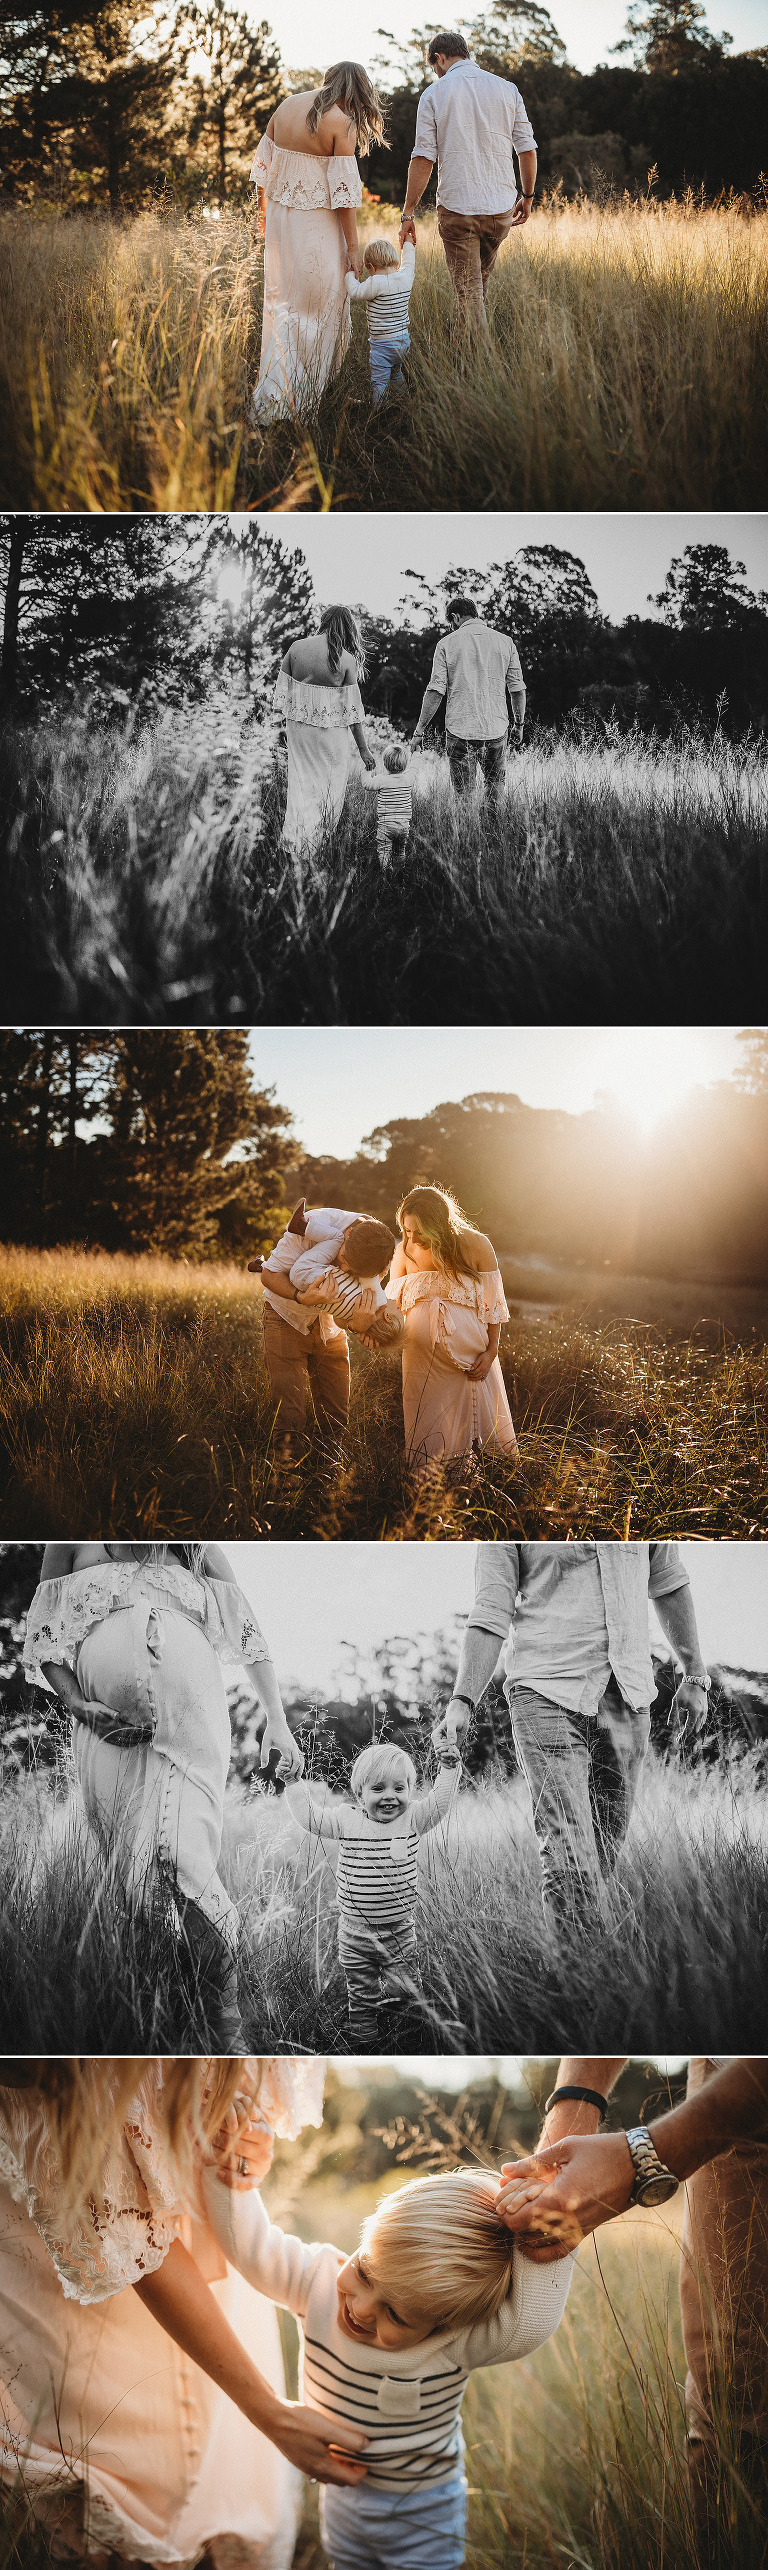 Sutherland-Shire-Maternity-Photography-Natural-Lifestyle